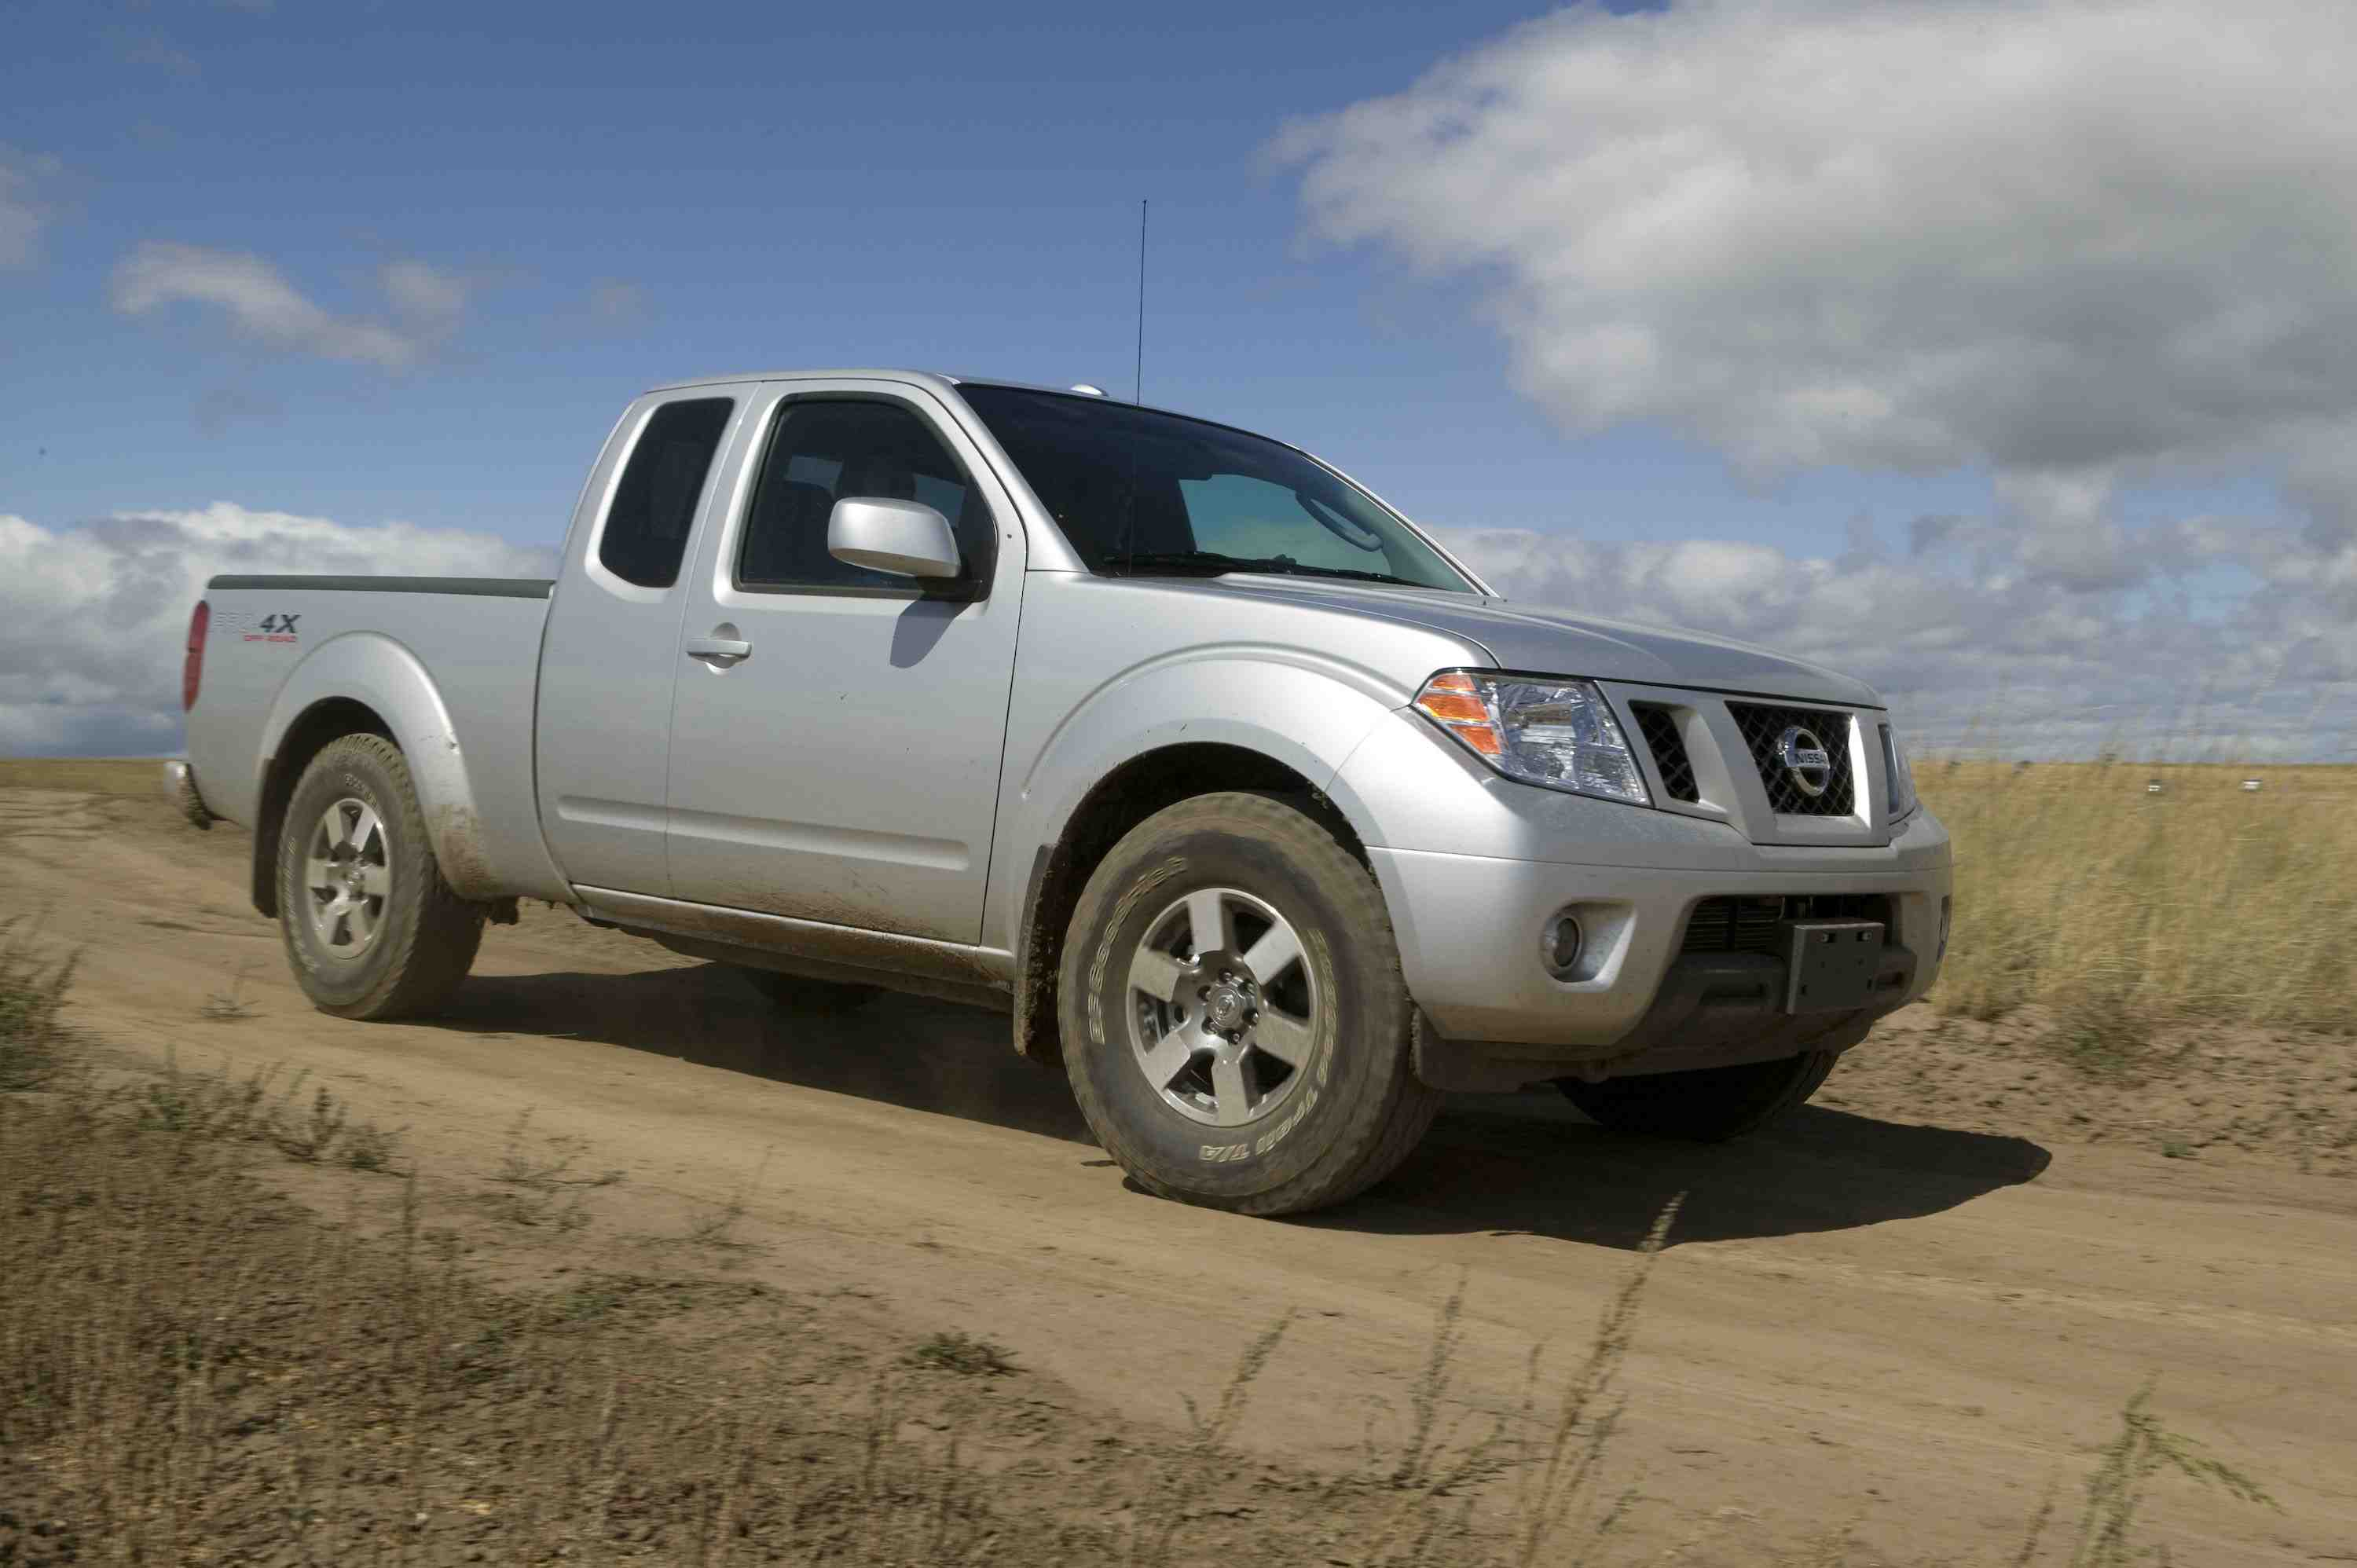 wa in of for auburn used vehicles nissan beautiful sale frontier cars car